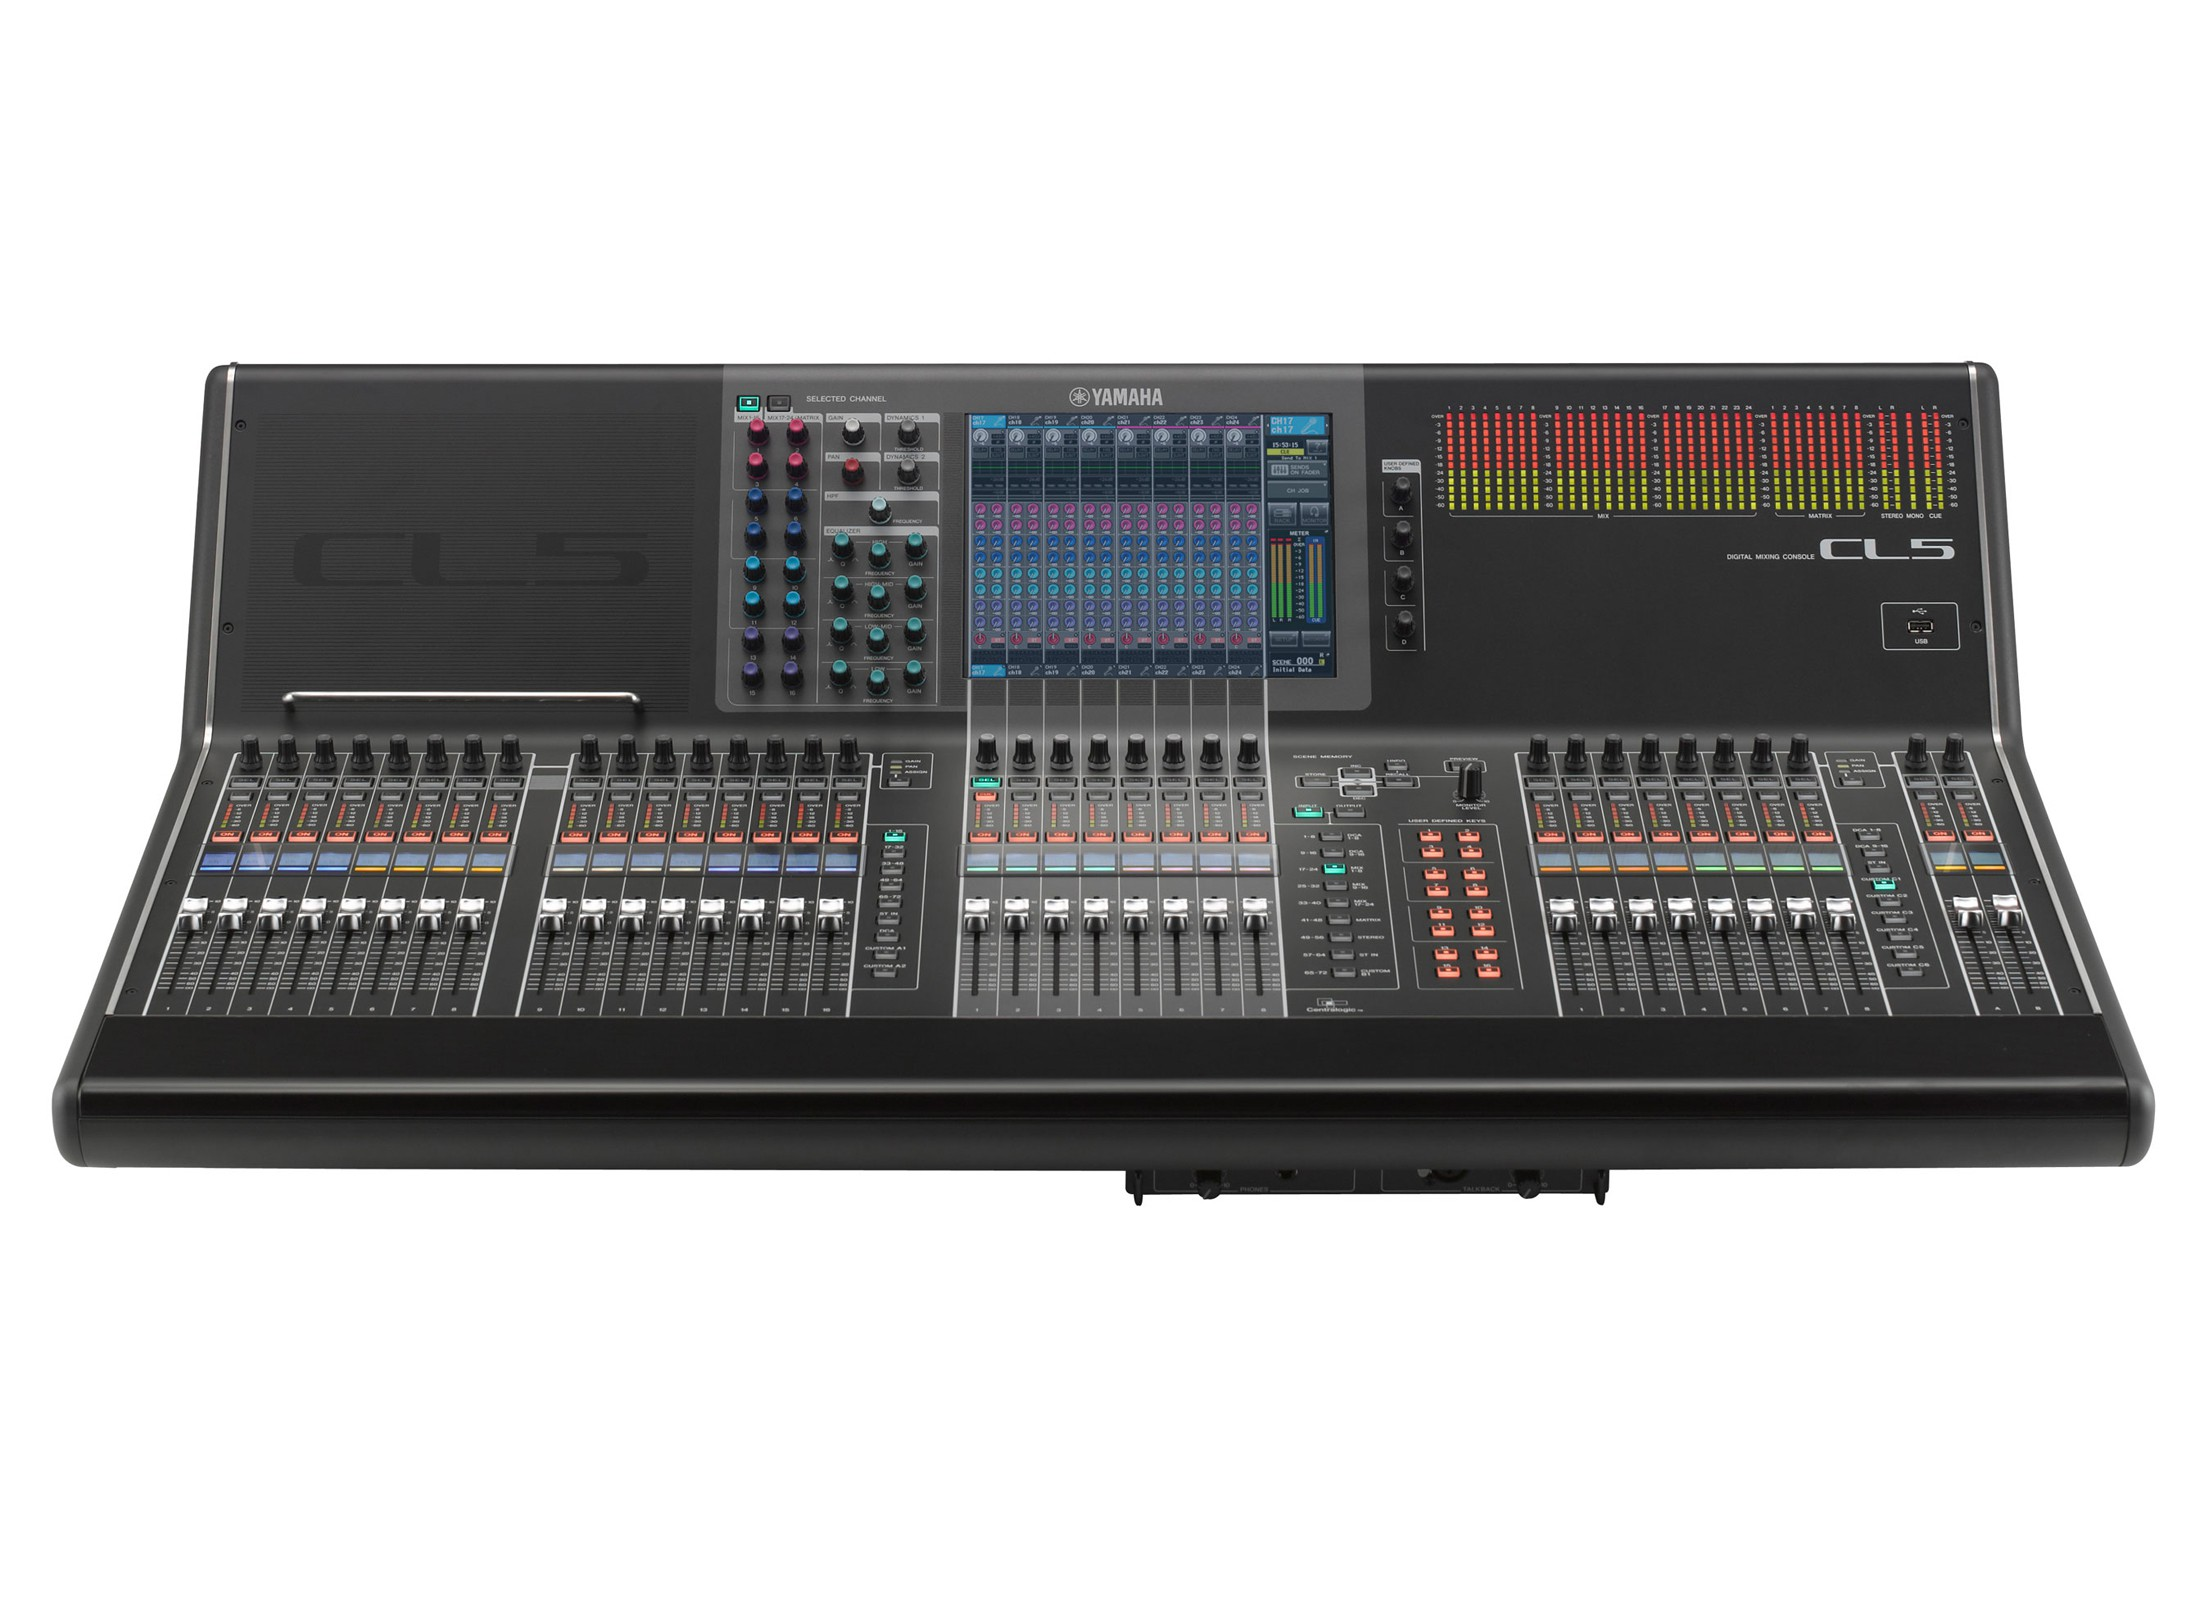 yamaha cl5 digital mixer online at low prices at huss light sound. Black Bedroom Furniture Sets. Home Design Ideas